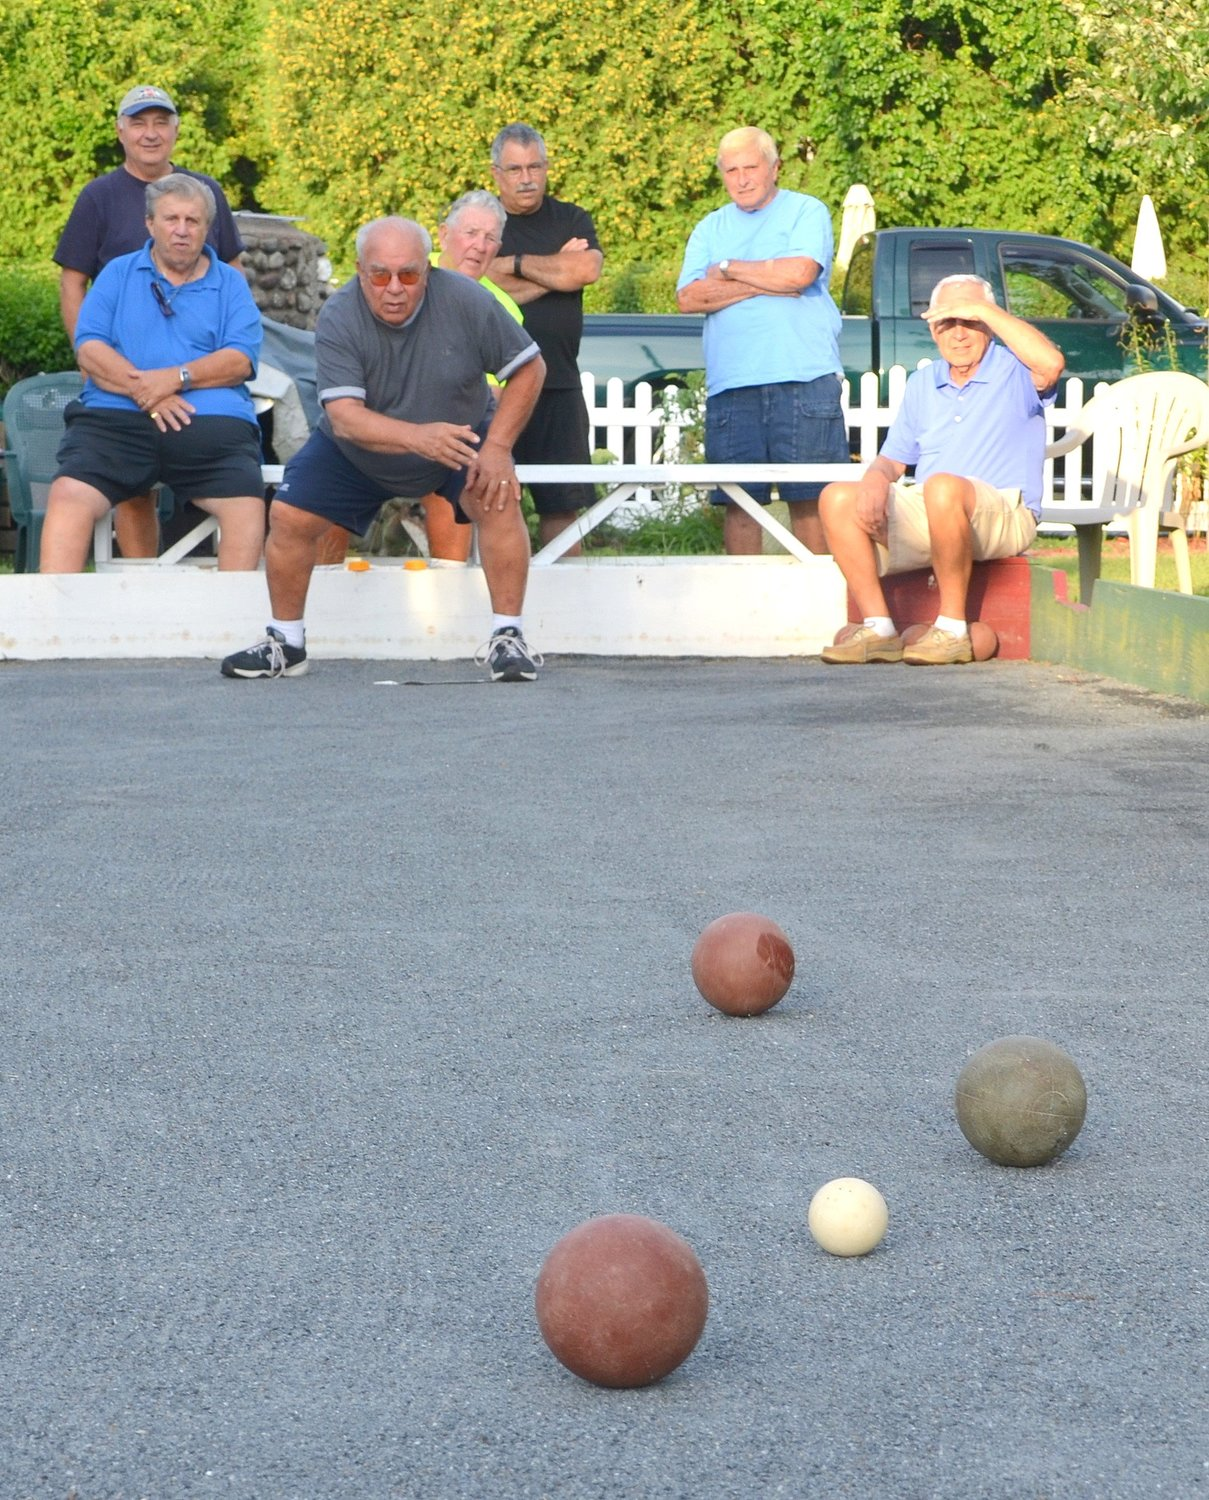 Richard Travers figures he's delivered the perfect ball in recent Mt. Hope Bocce League action.